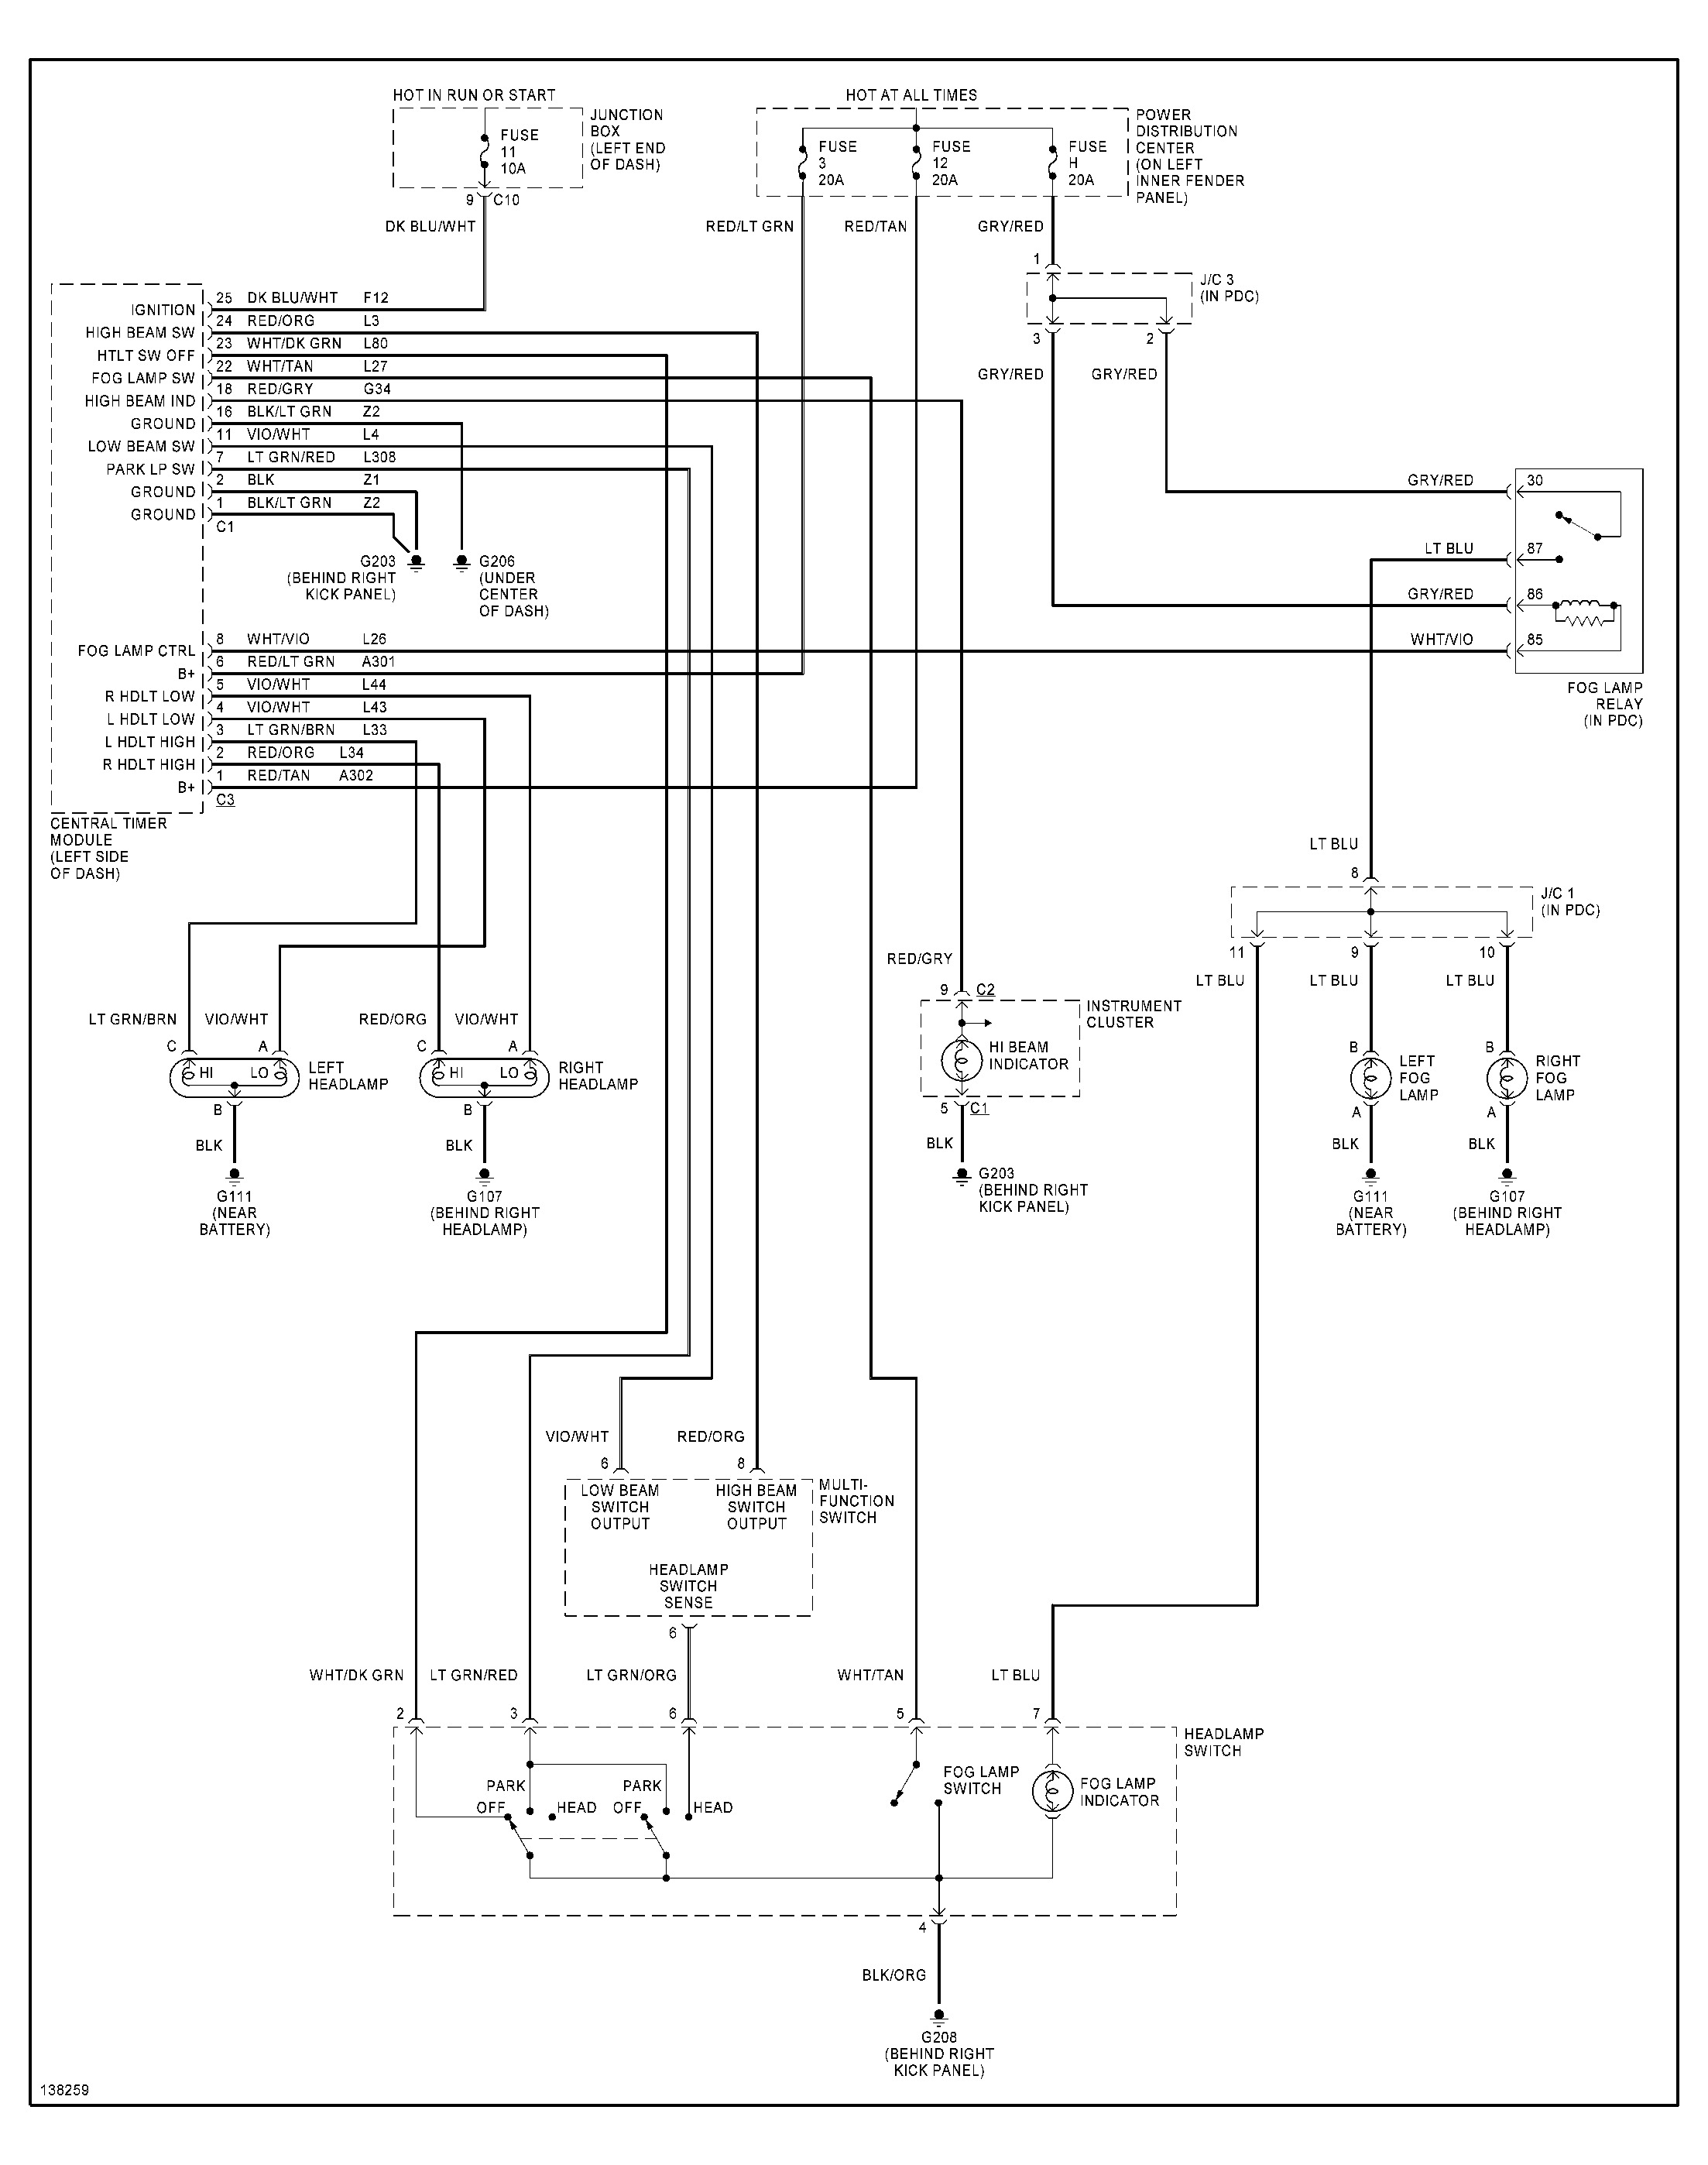 Headlamp Wiring Diagram For 2003 Dodge Dakota - DIY Wiring Diagrams •